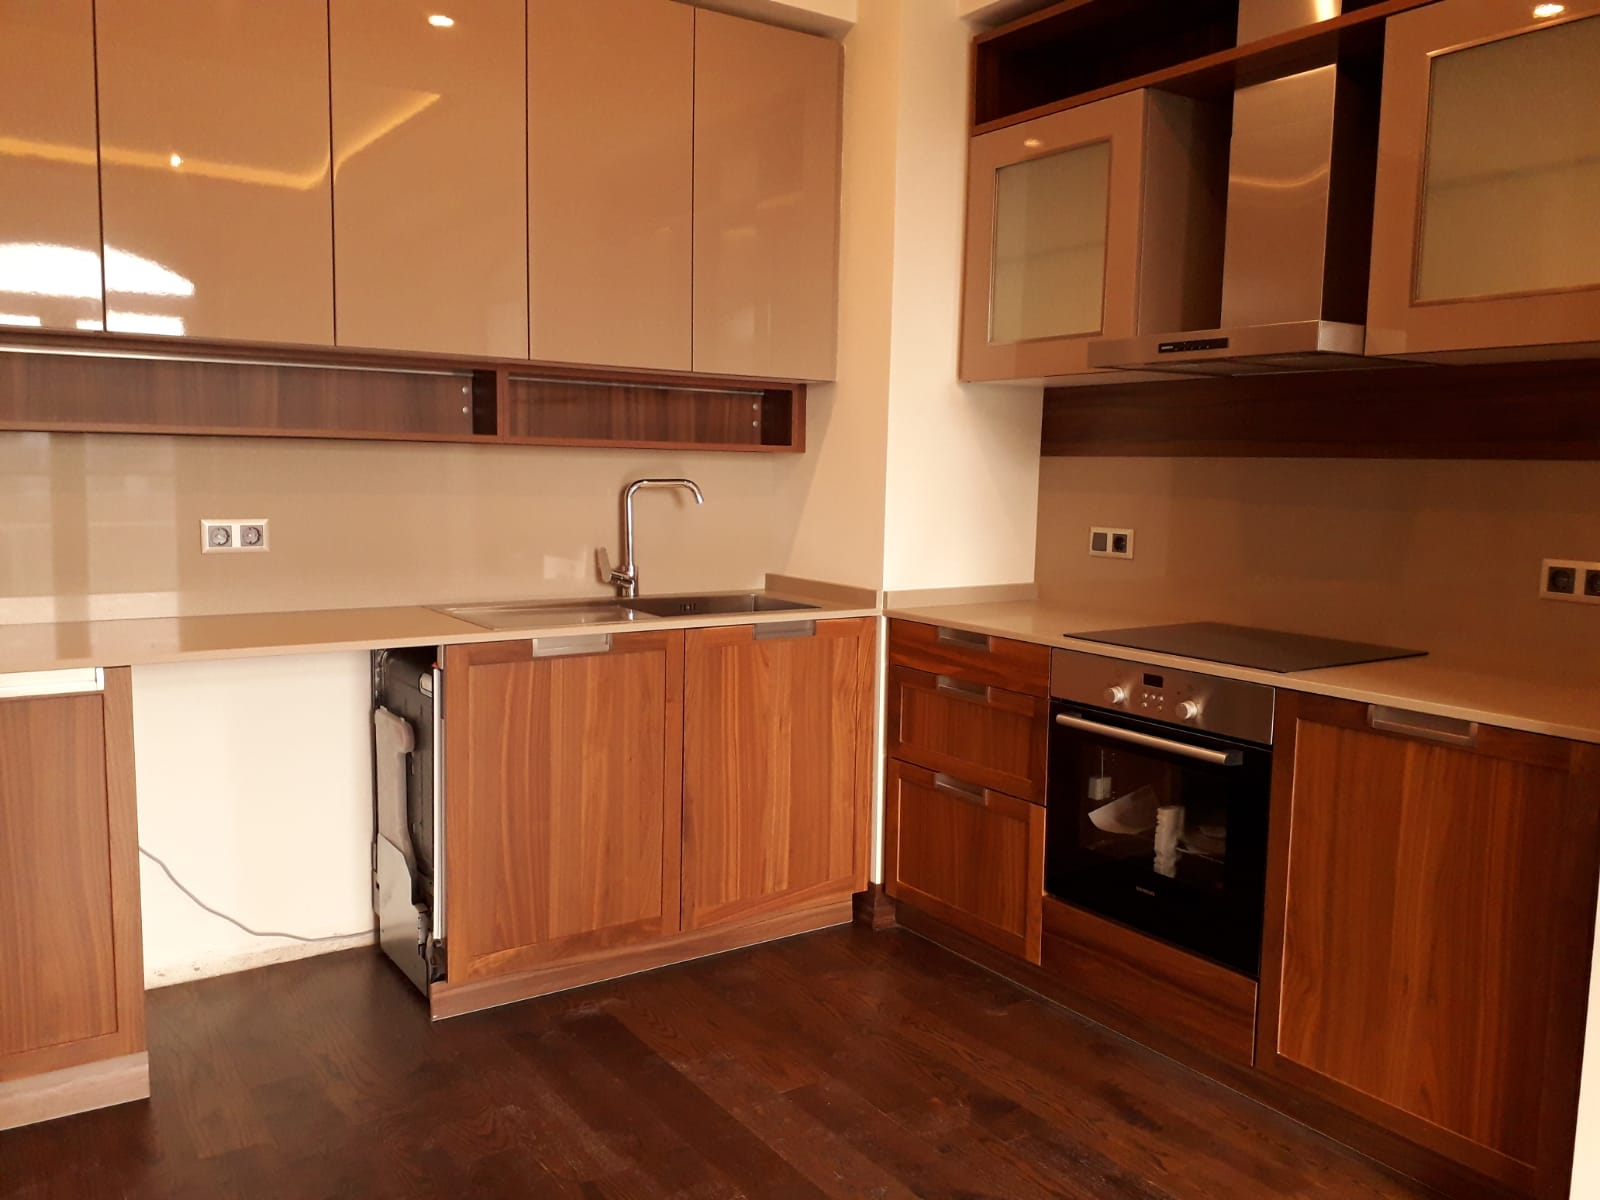 BRAND NEW APARTMENT IN ISTANBUL FOR SALE CLOSE TO TAKSIM